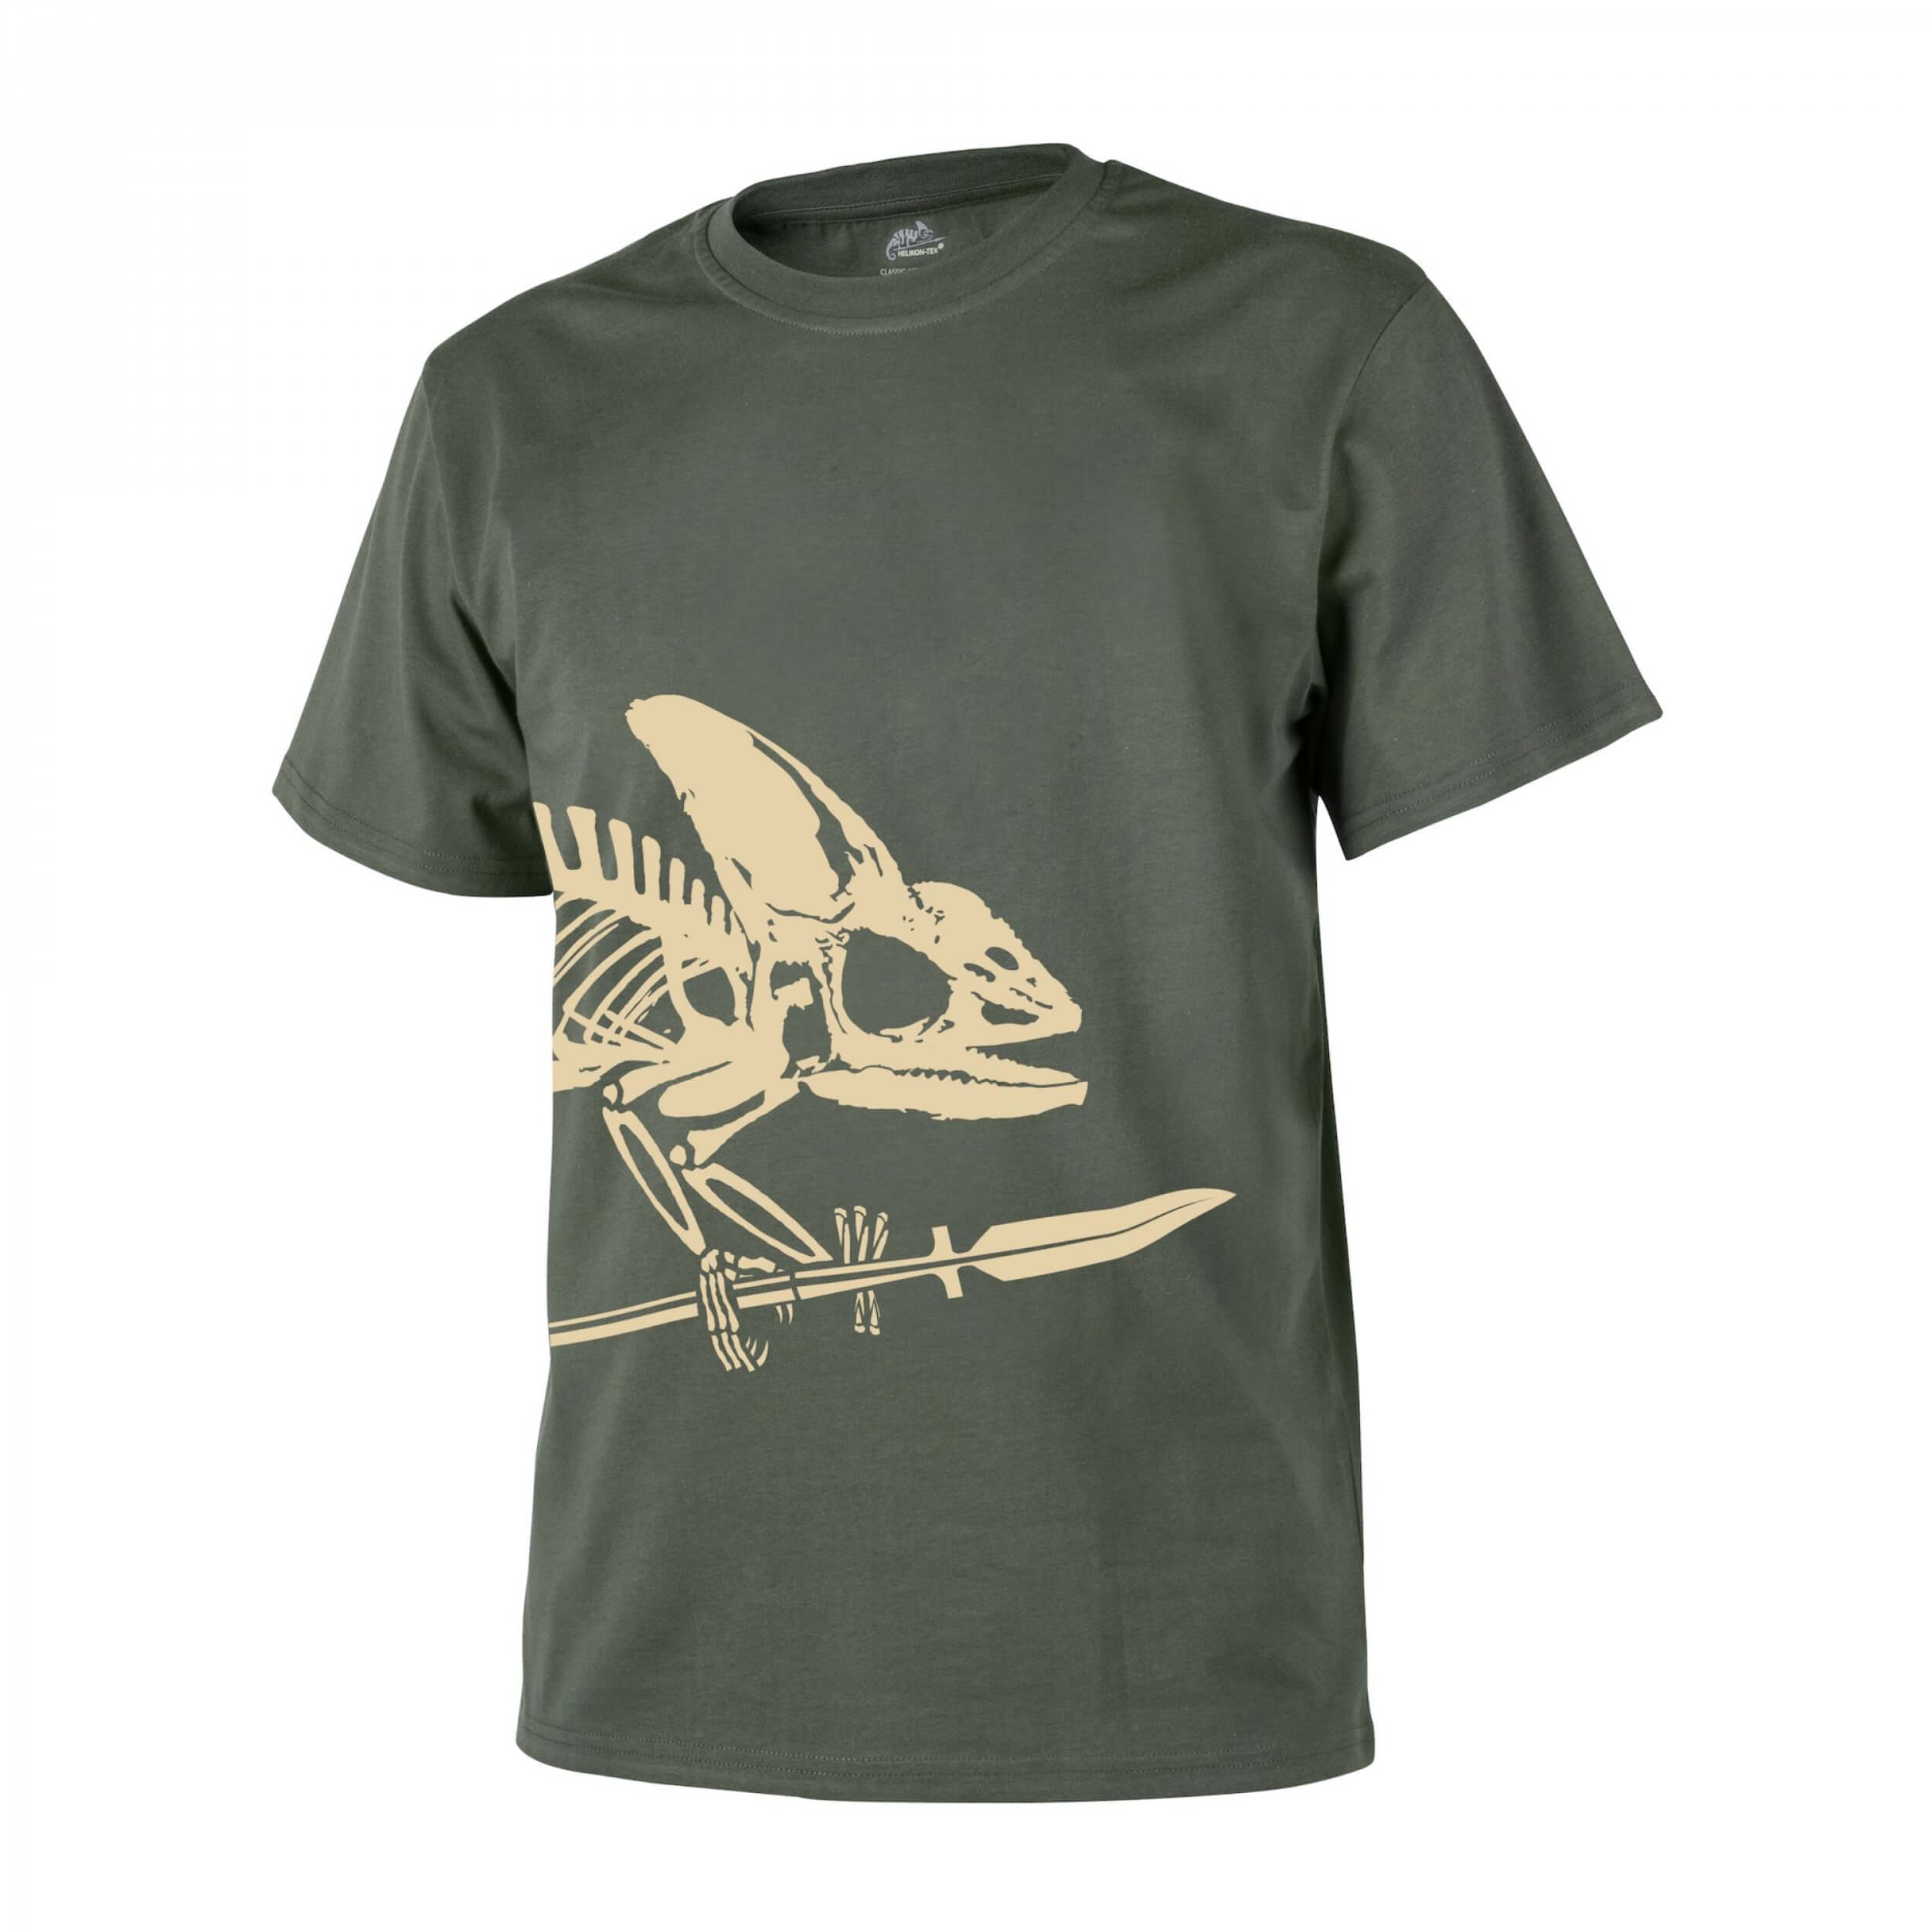 Helikon-Tex T-Shirt (Full Body Skeleton) -Cotton- Olive Green